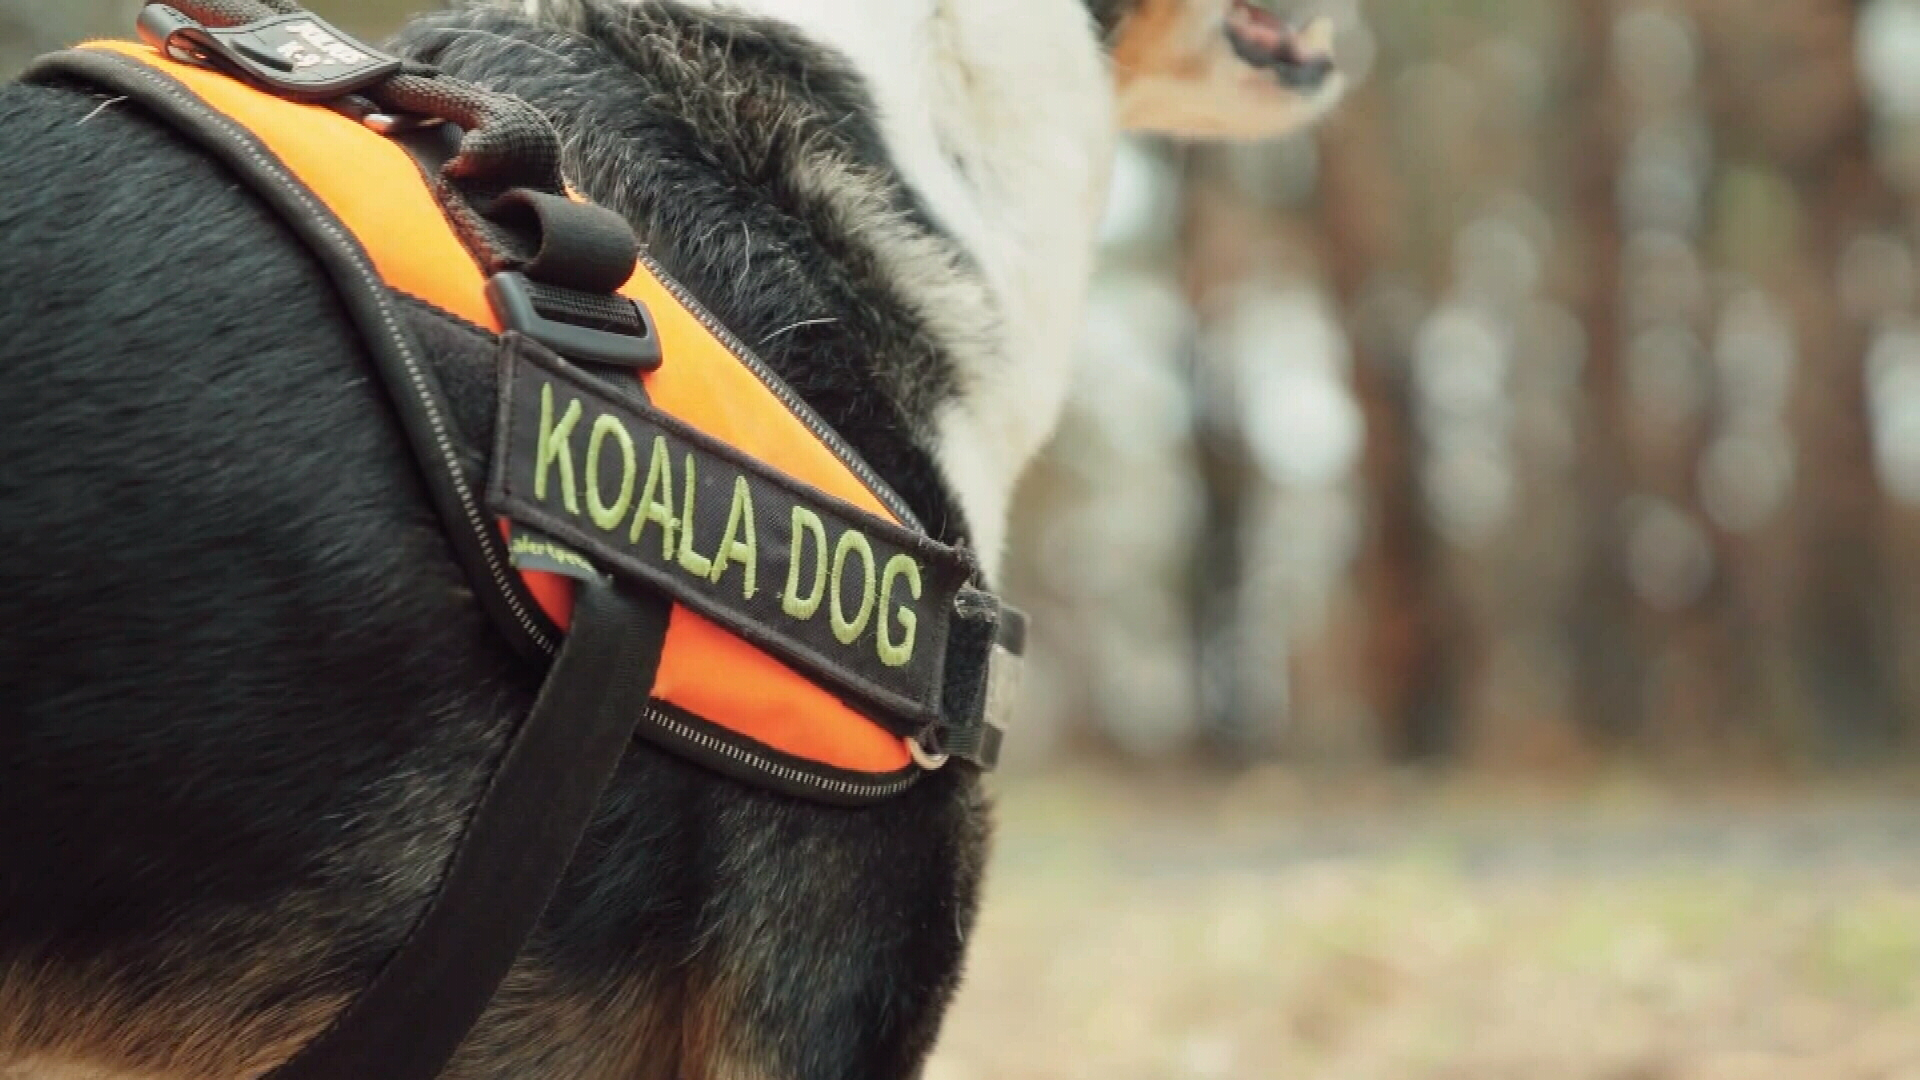 With their heightened sense of smell, dogs like Smudge are able to detect fresh droppings and alert humans.